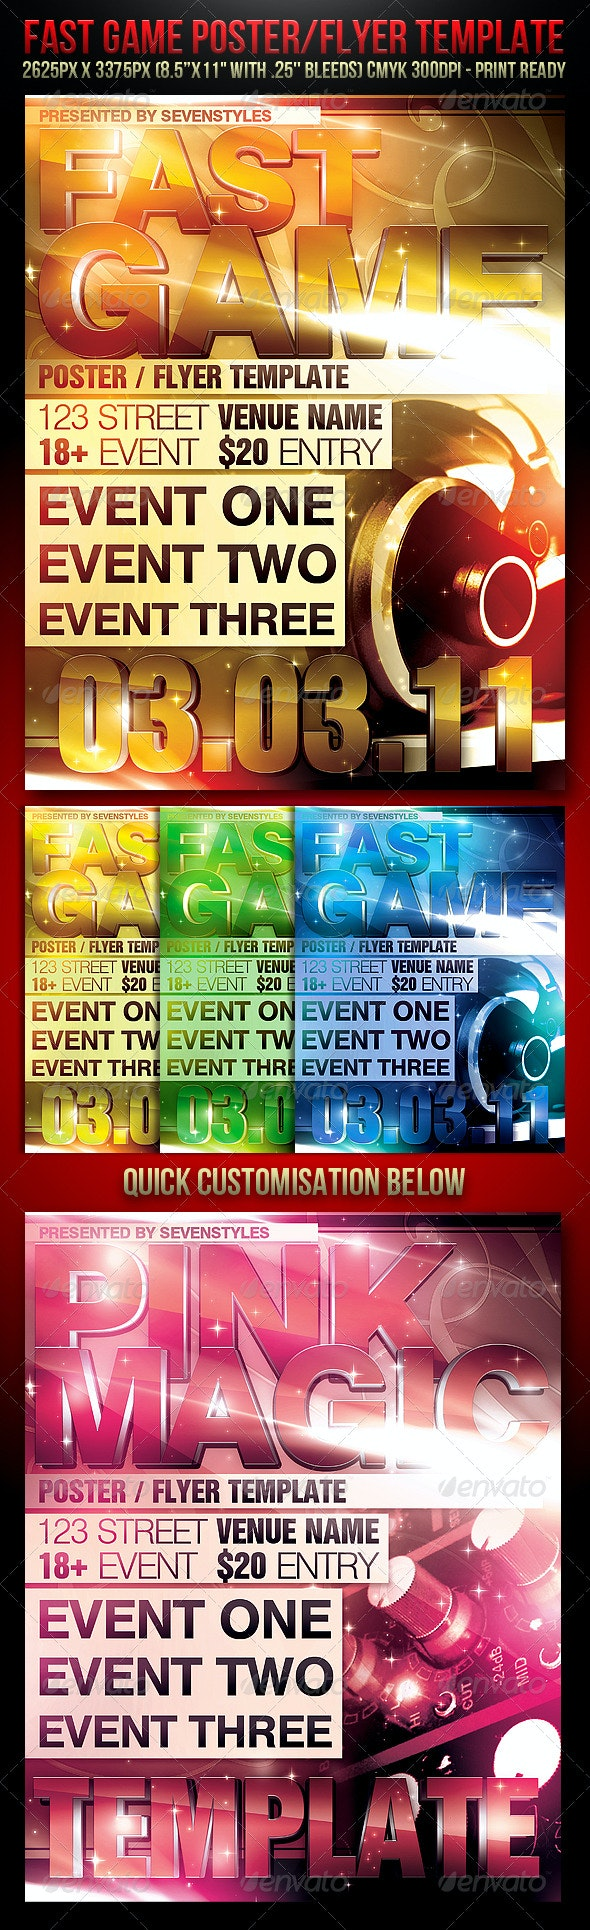 Fast Game Poster/Flyer Template - Clubs & Parties Events